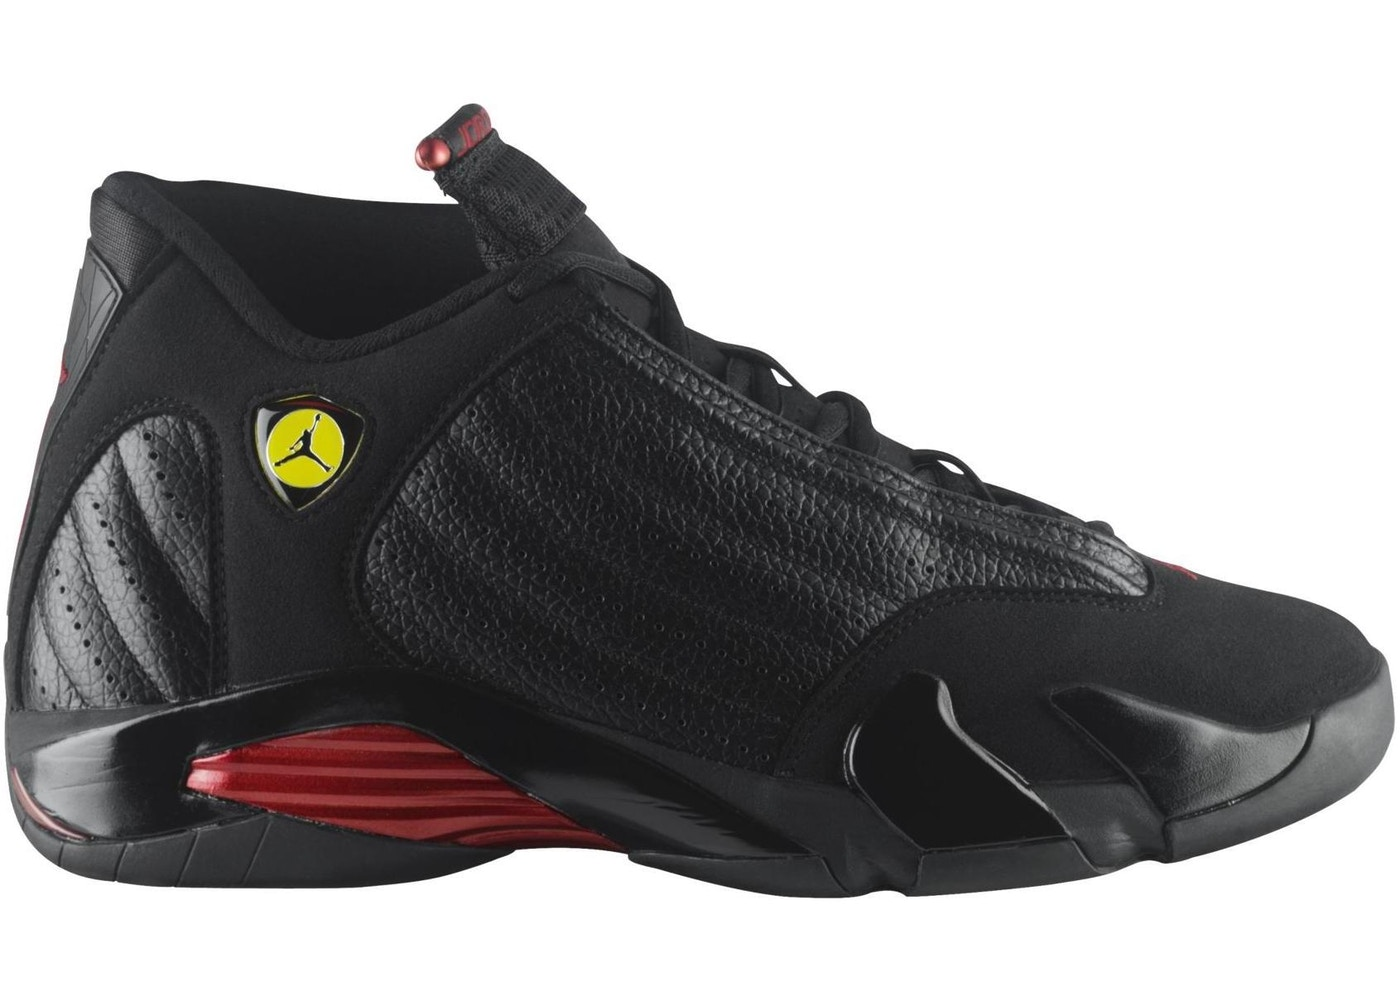 95151384a7417c Buy Air Jordan 14 Shoes   Deadstock Sneakers